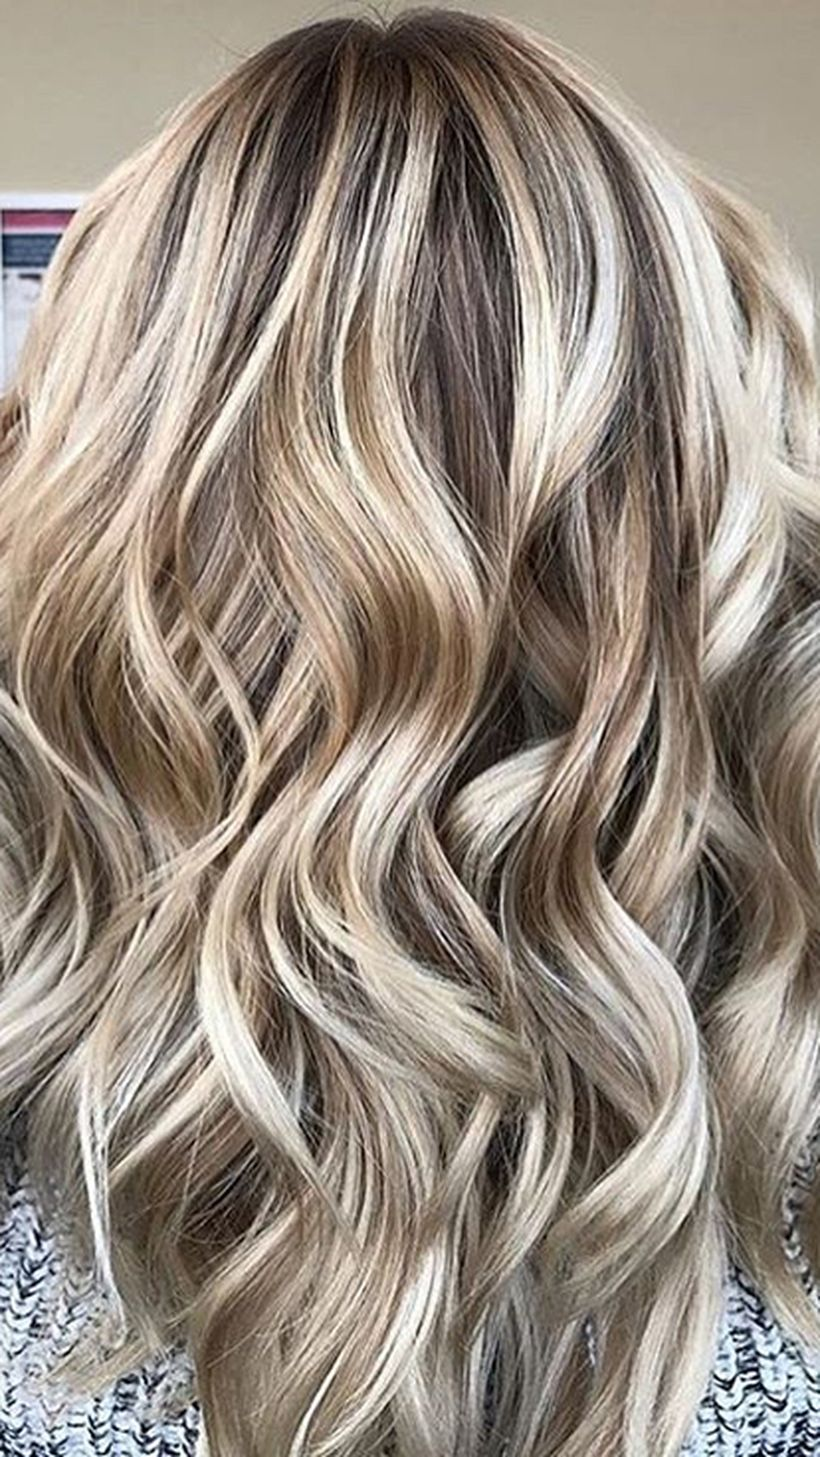 Stunning fall hair colors ideas for brunettes 2017 53